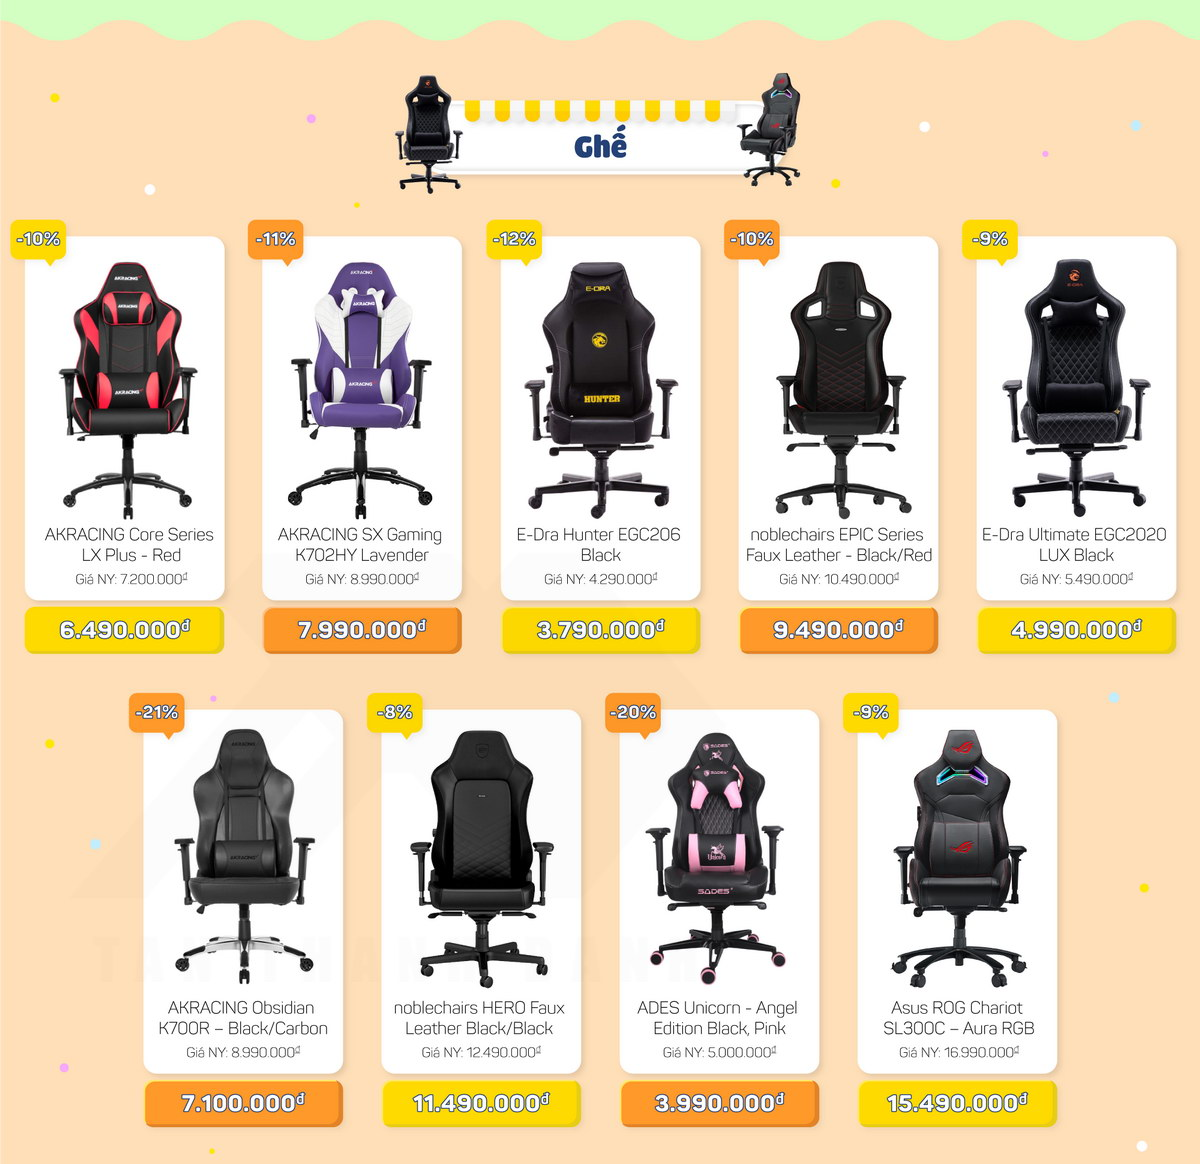 TTD Promotion 2010 DaiTiecGamingGears Ghe v2